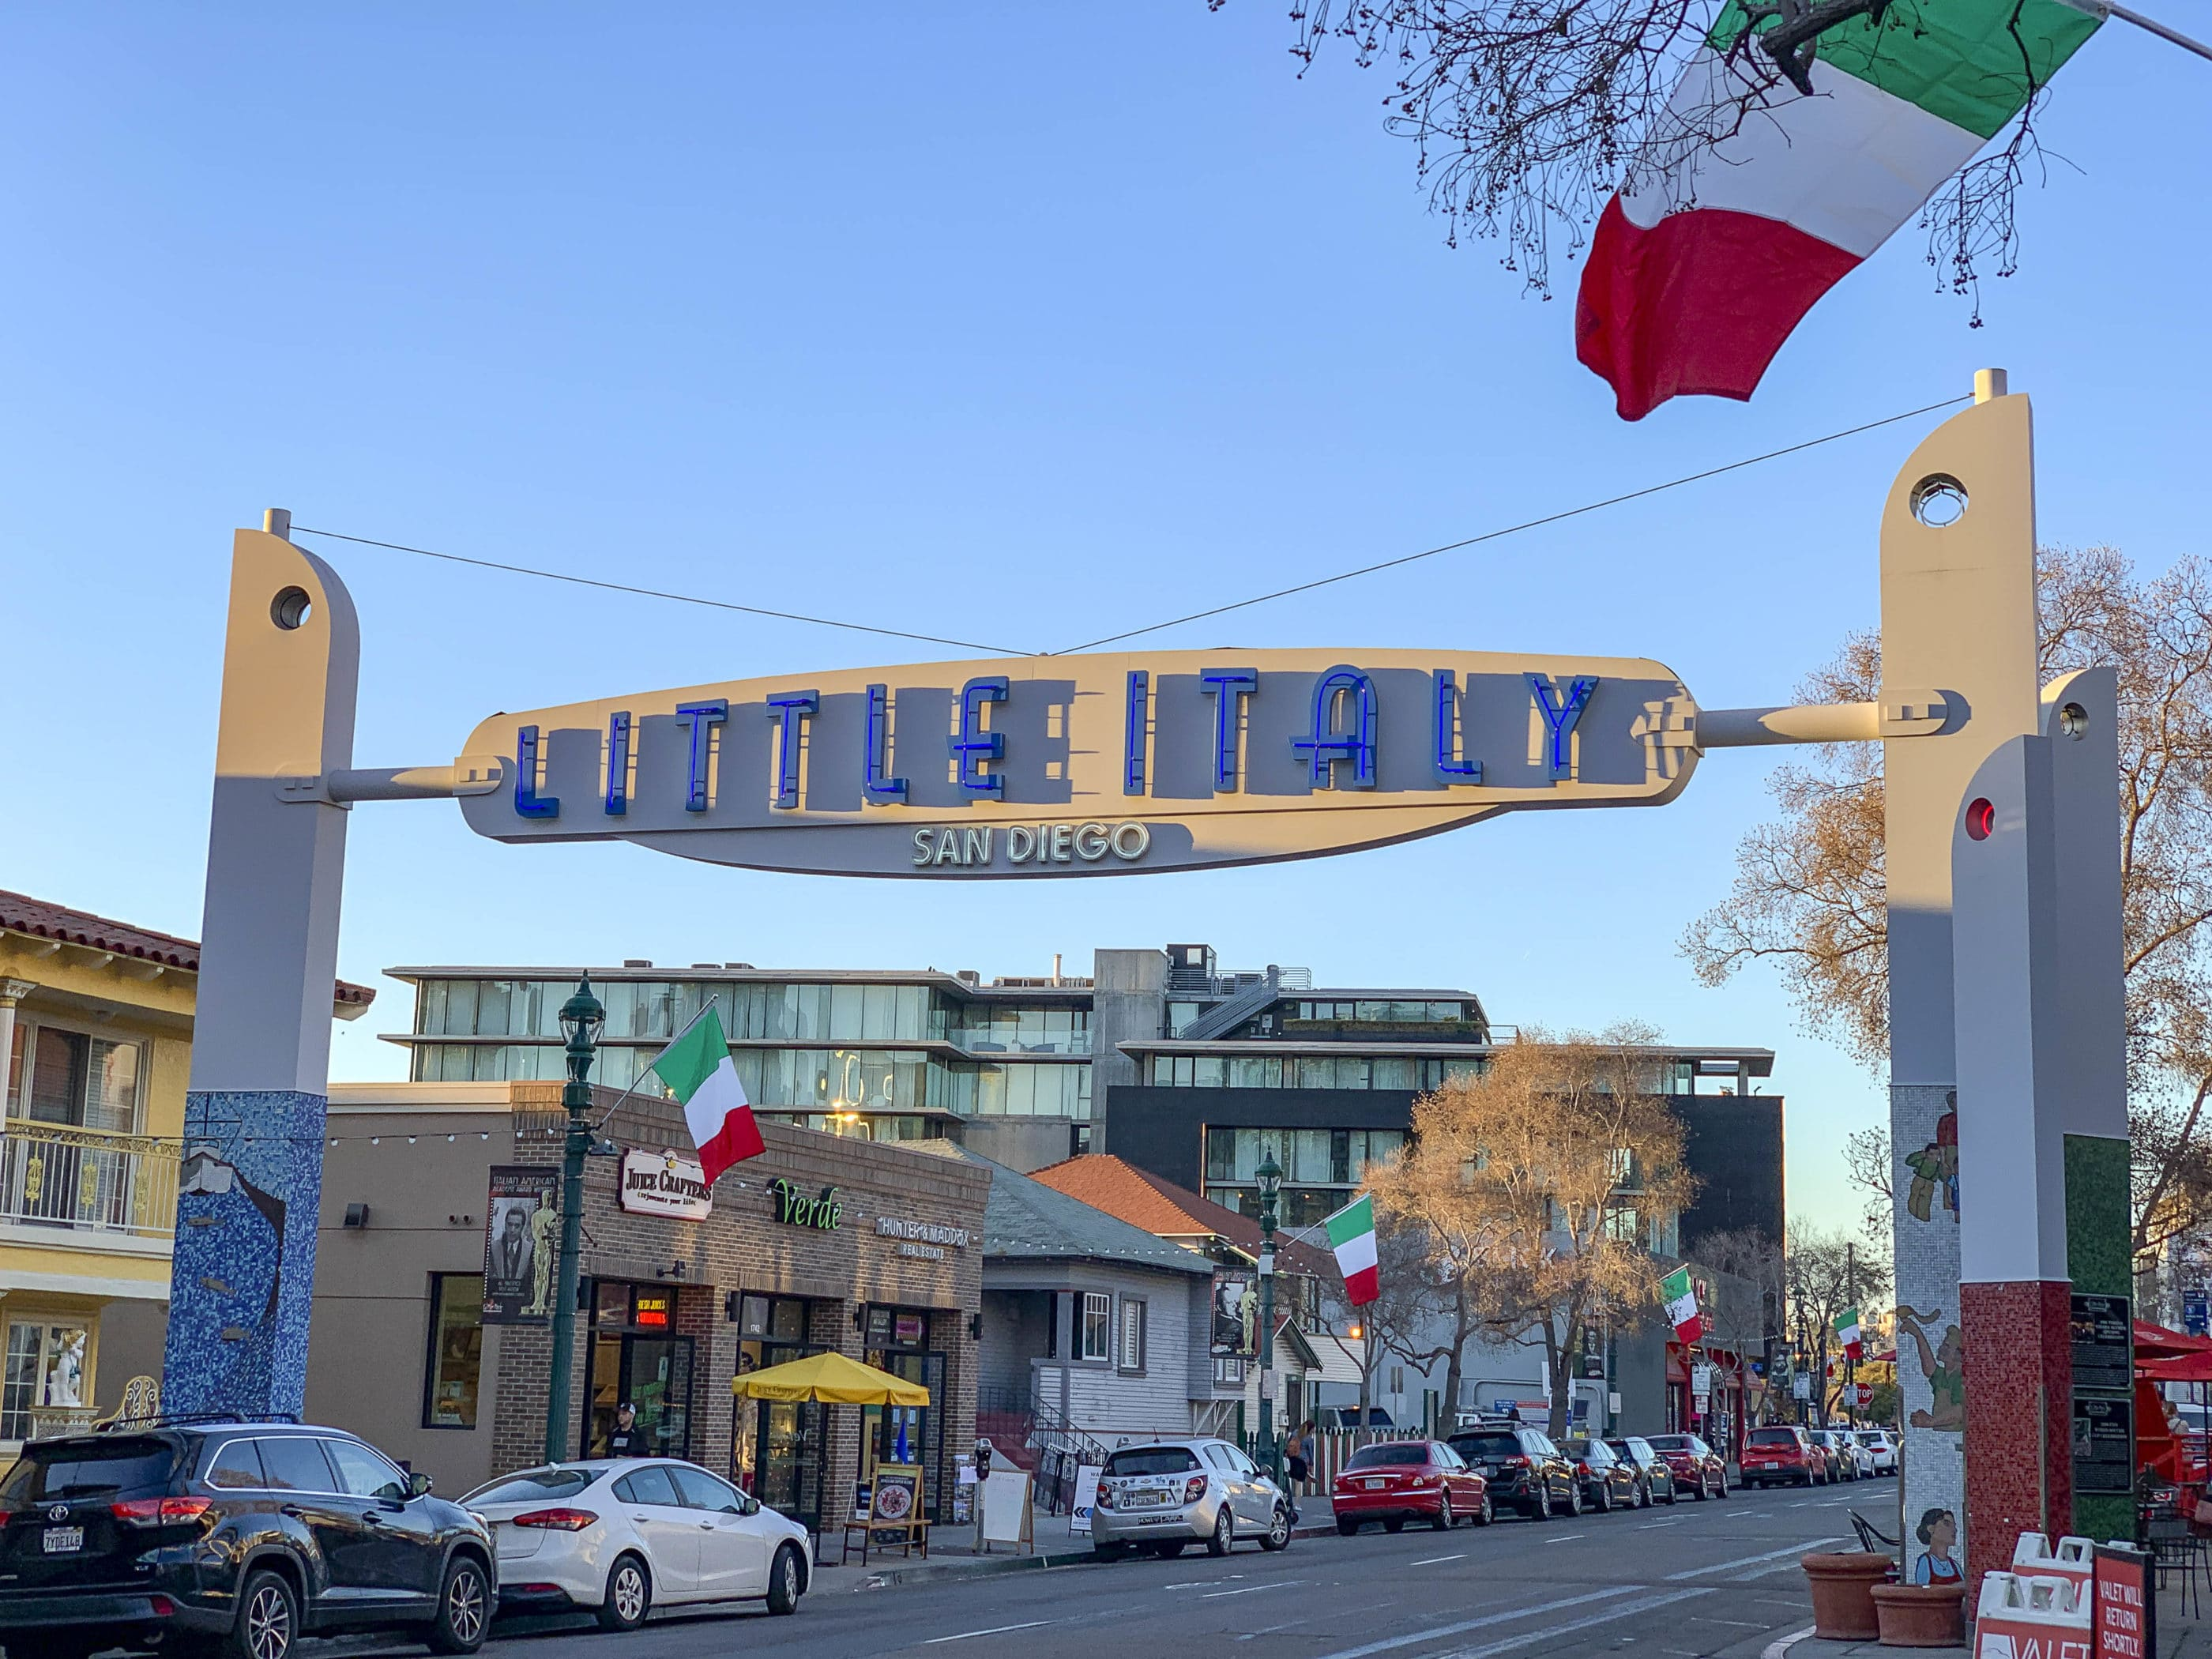 The sign for Little Italy San Diego in February with blue skies